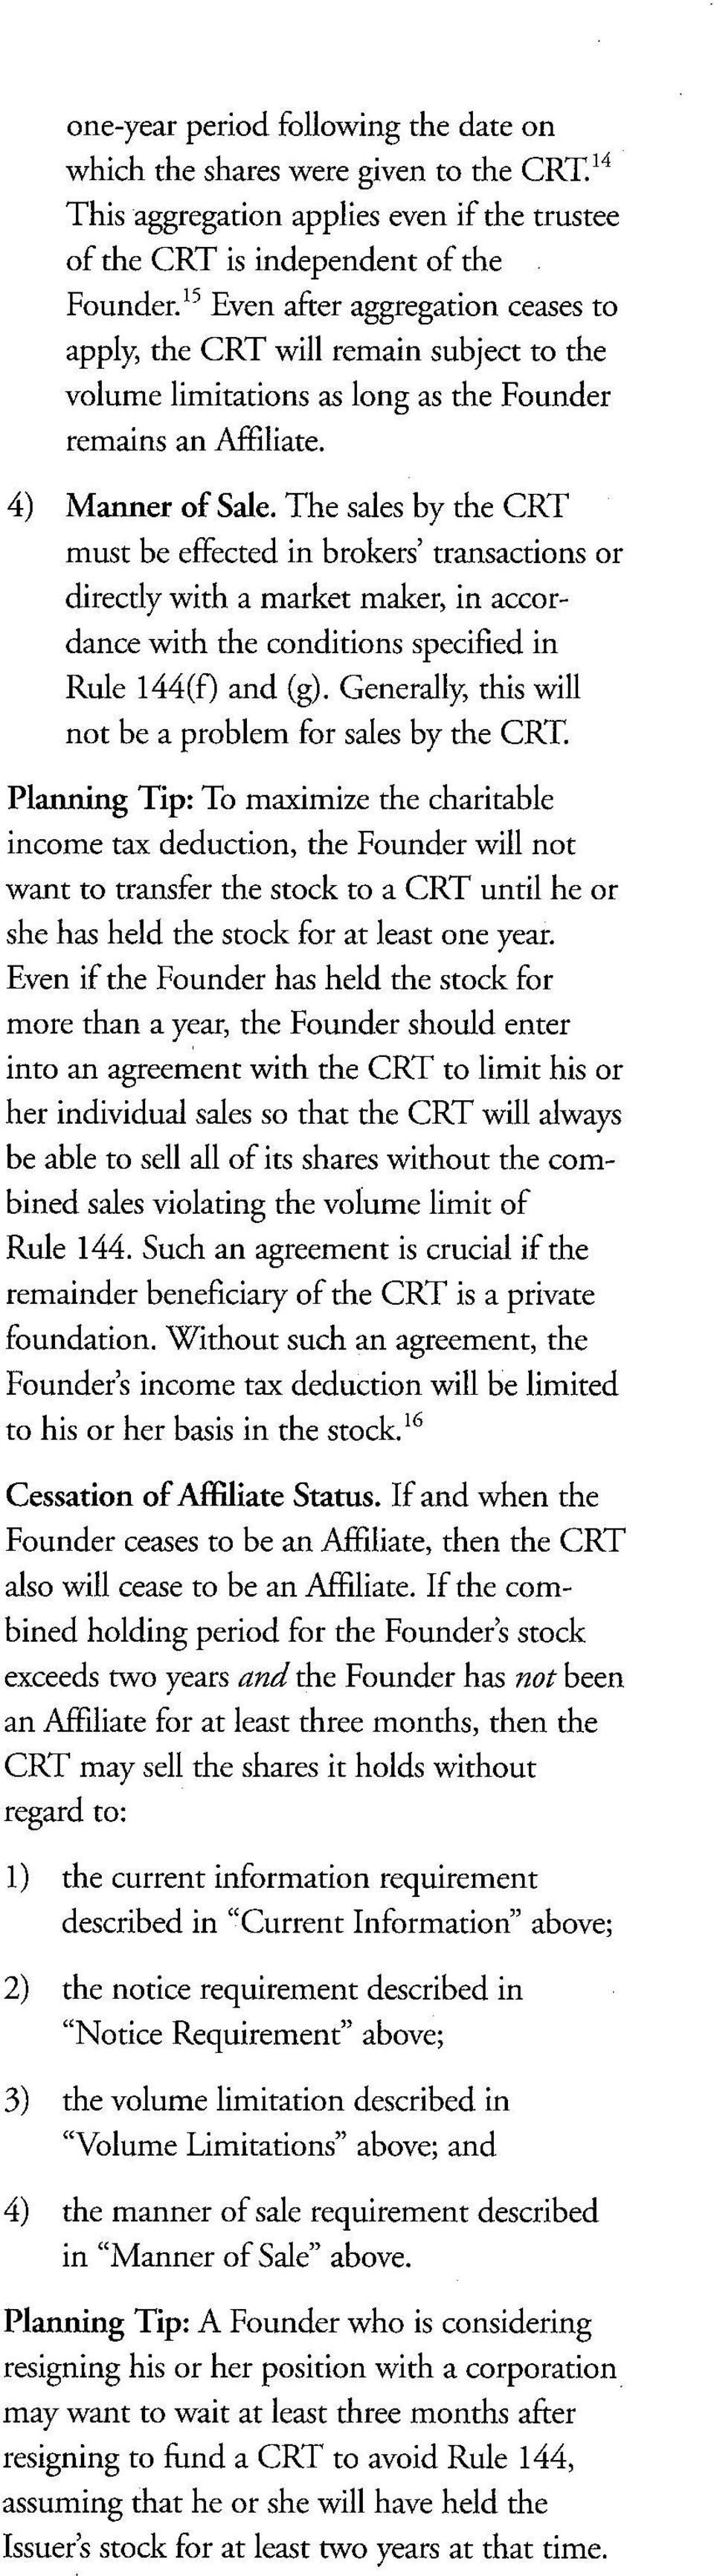 The sales by the CRT must be effected in brokers' transactions or directly with a market maker, in accordance with the conditions specified in Rule 144(f) and (g).